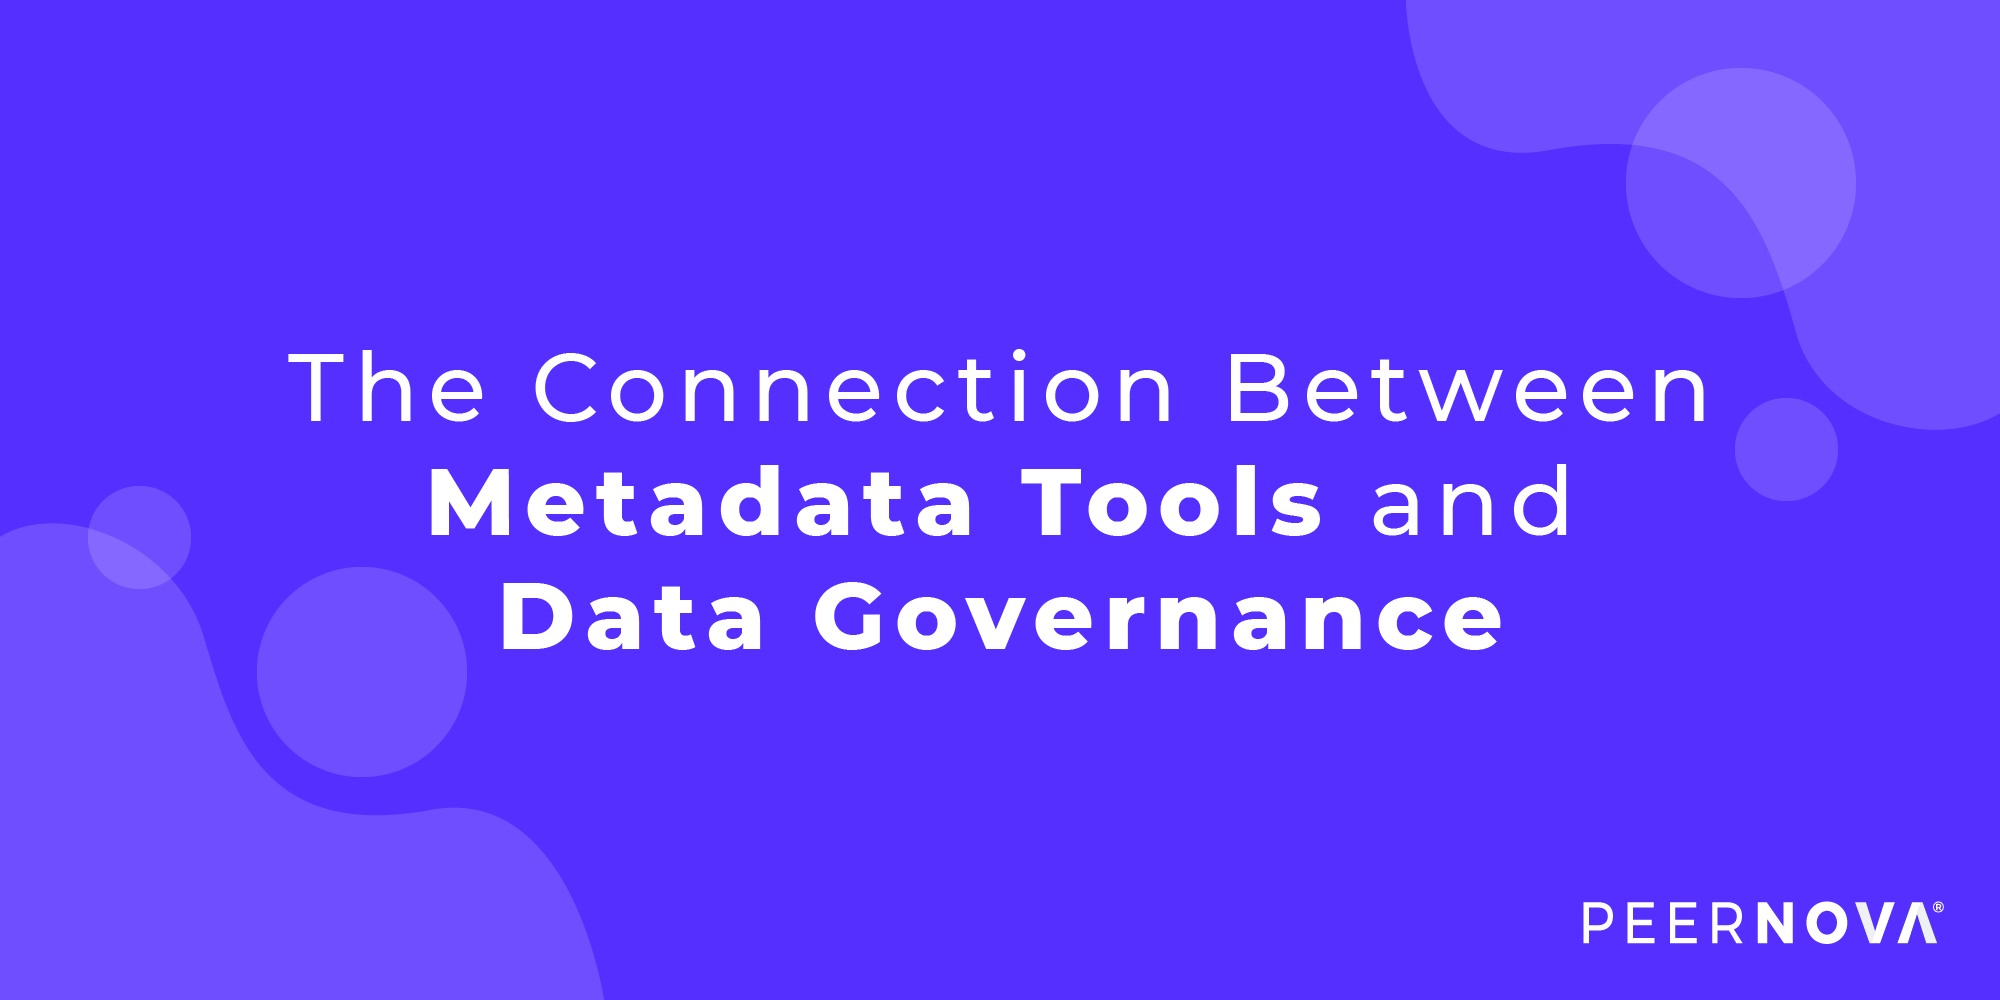 The Connection Between Metadata Tools and Data Governance